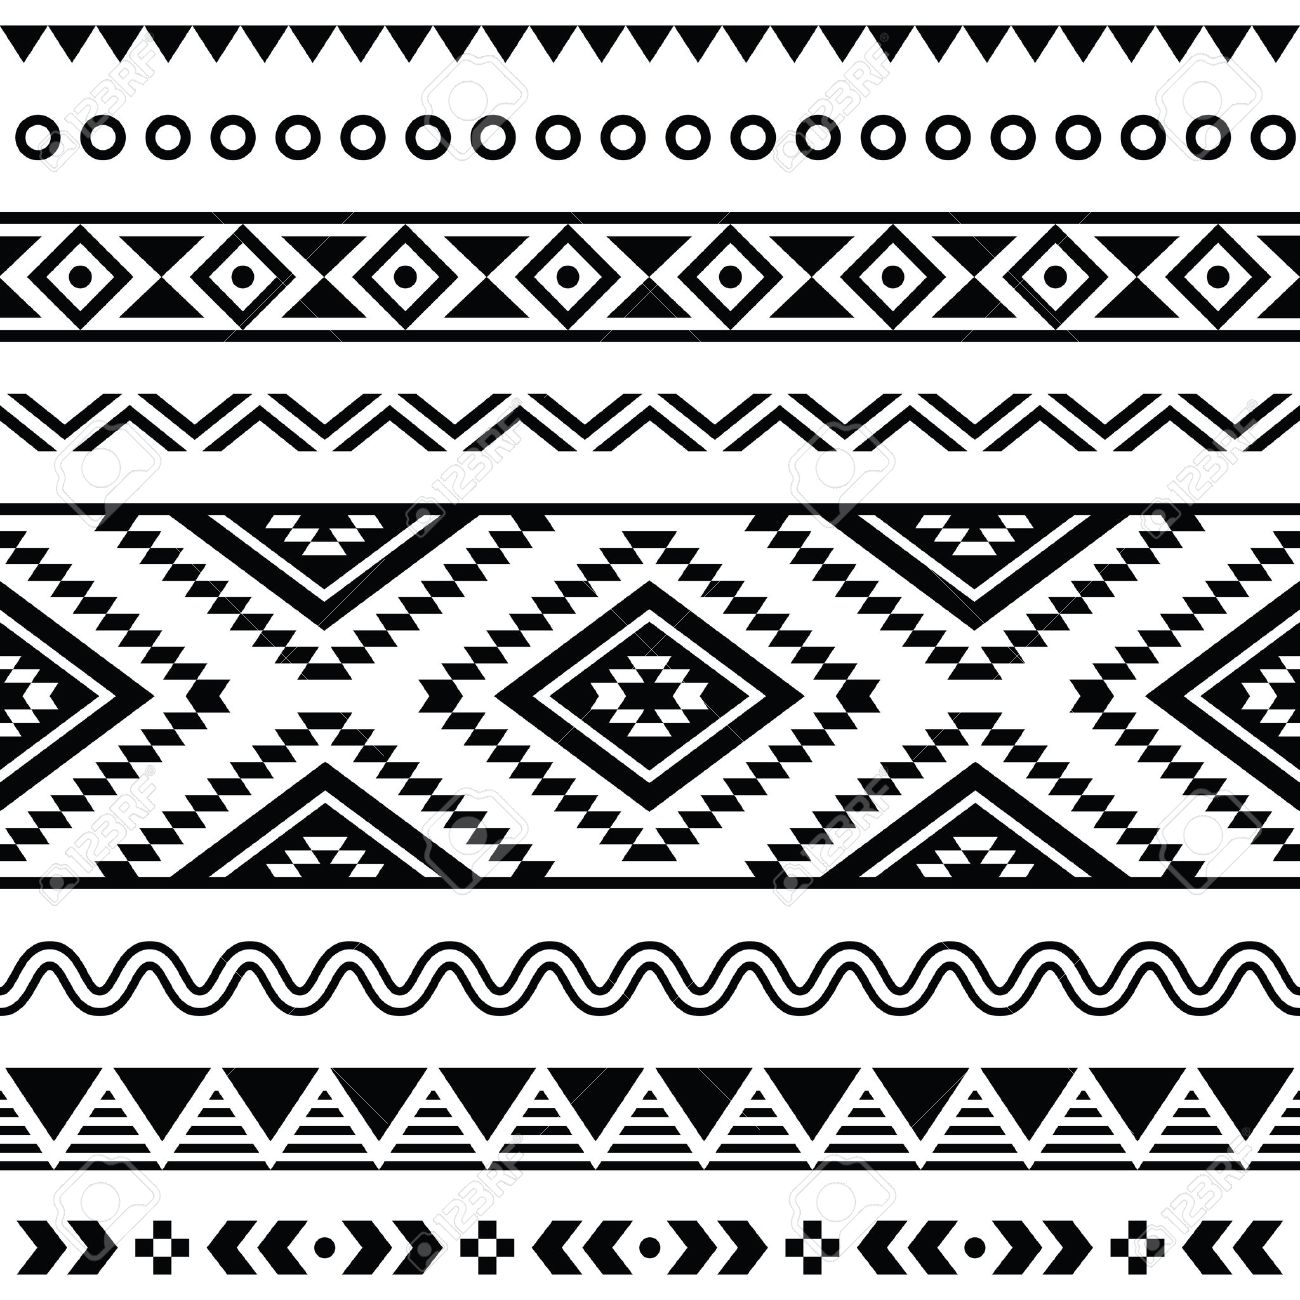 Aztec Designs And Patterns Tribal Seamless Pattern Aztec